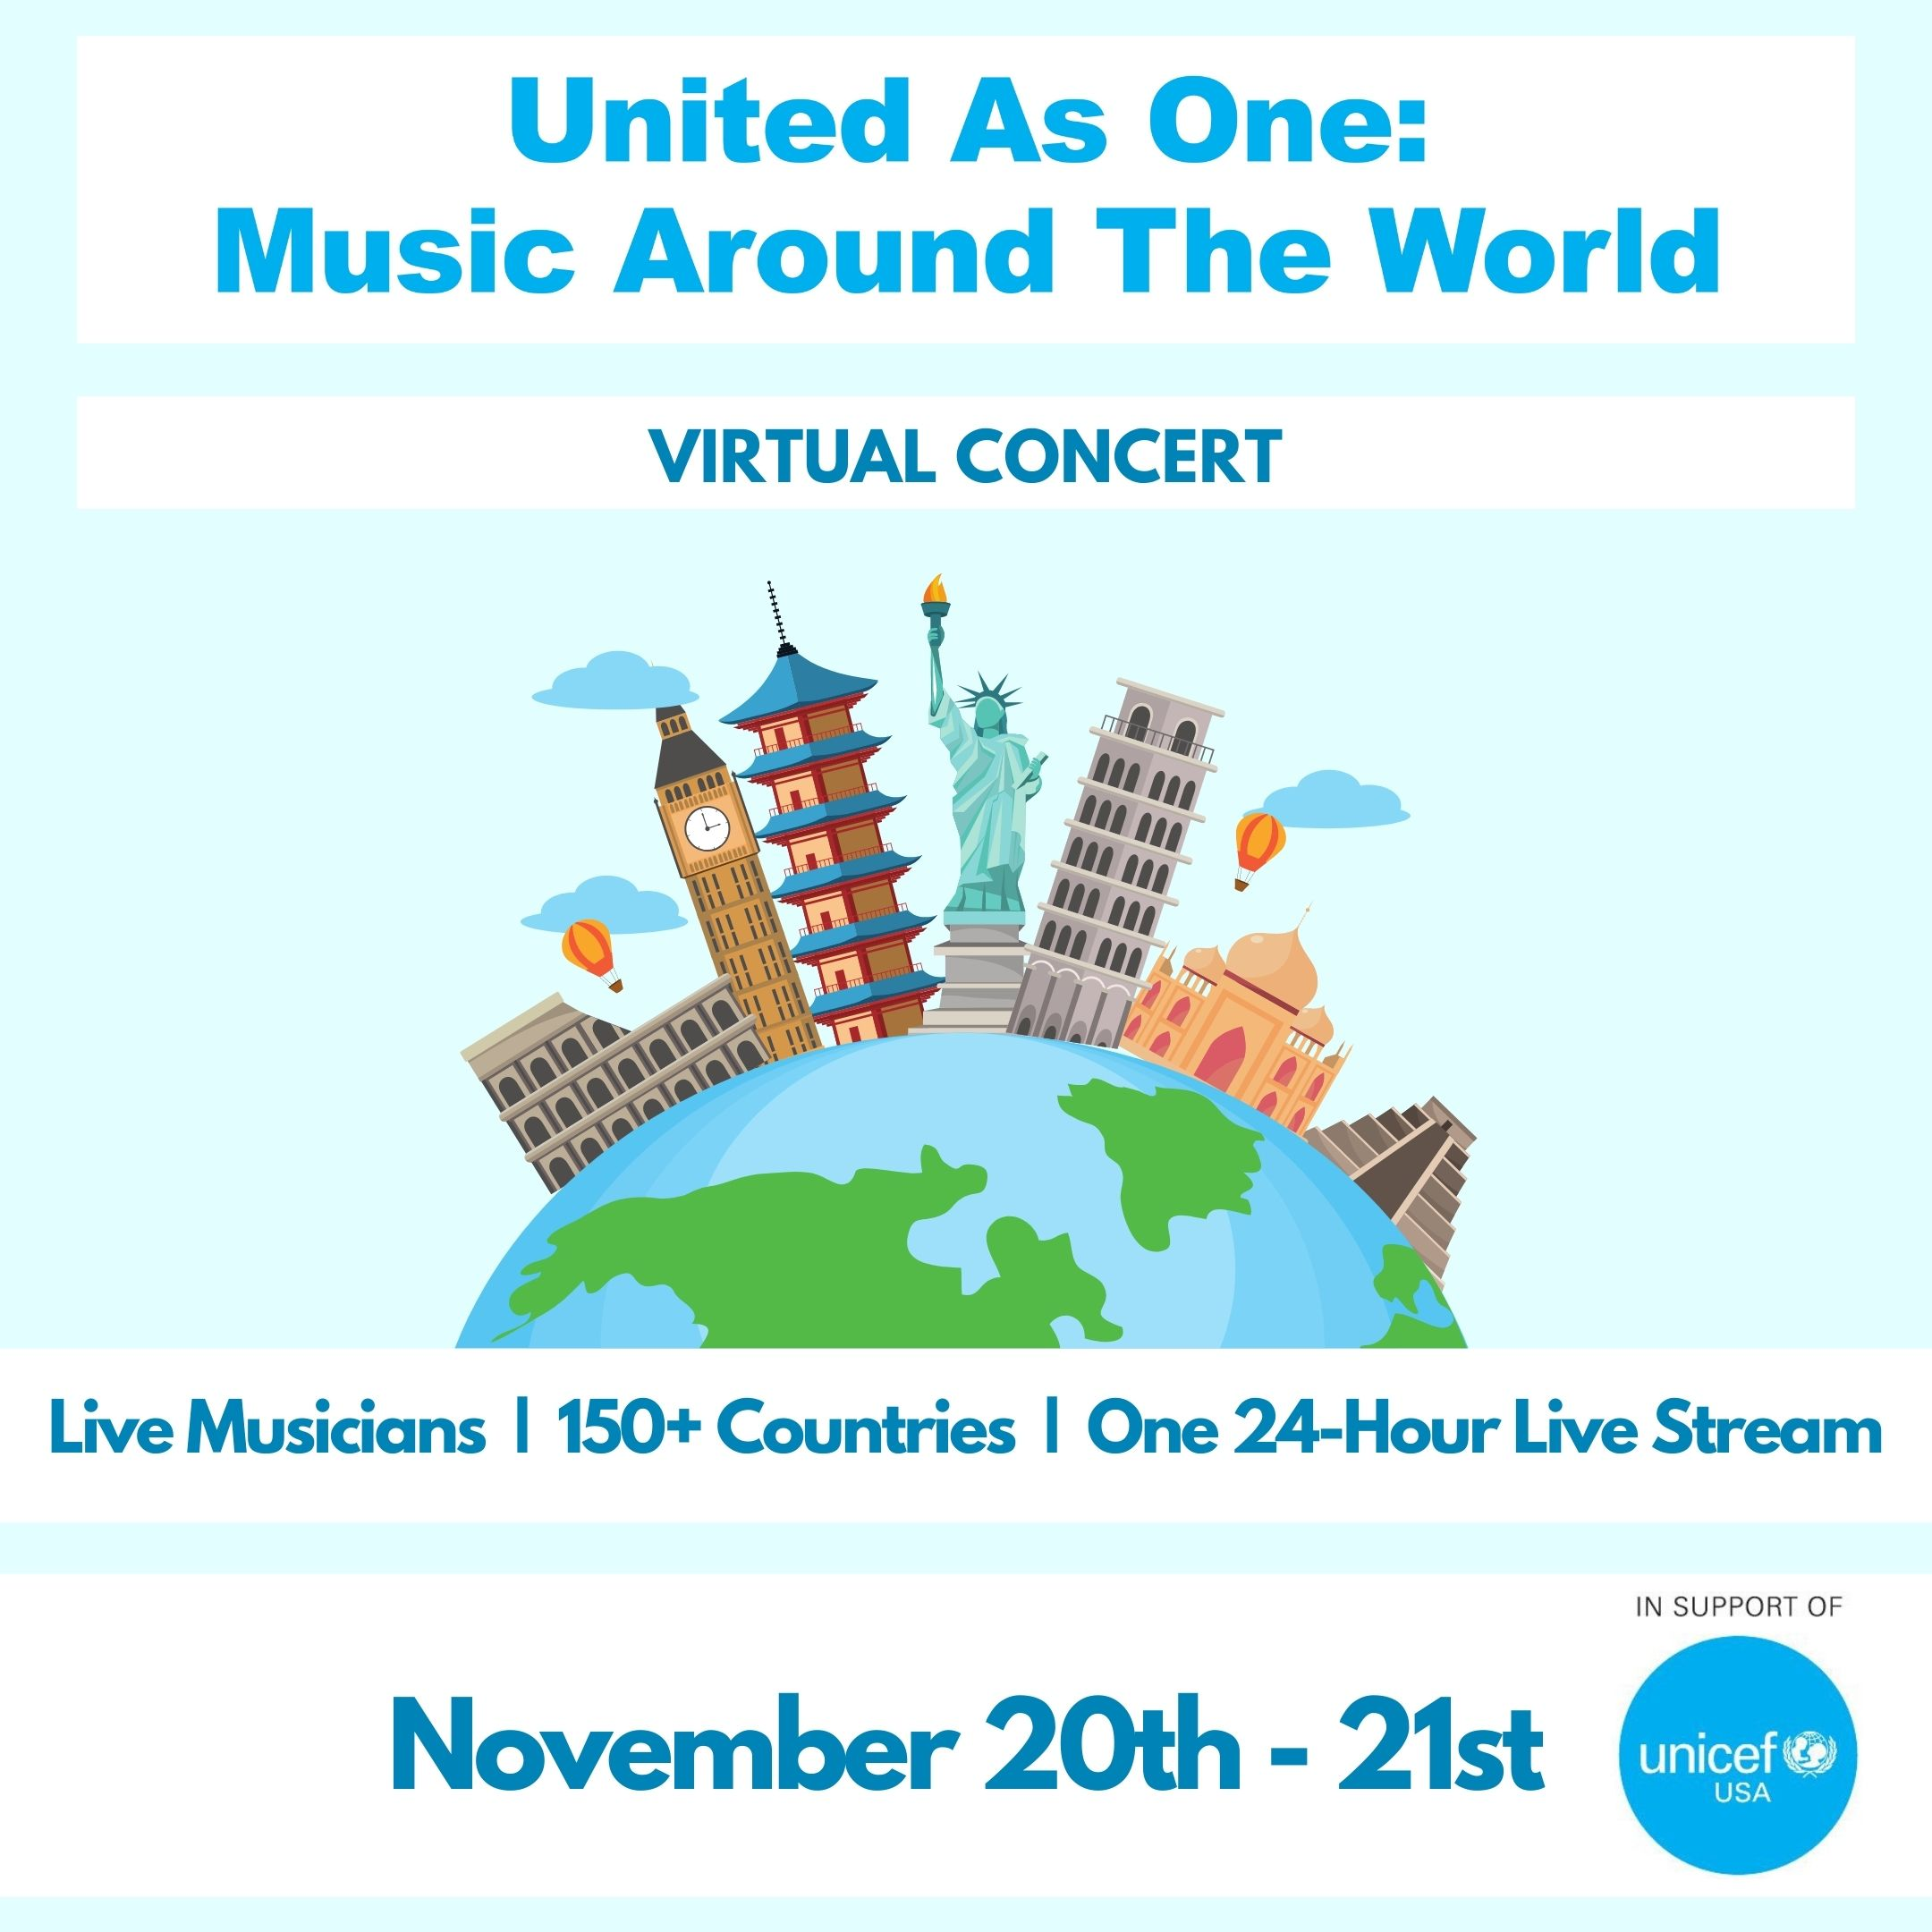 United As One: Music Around The World